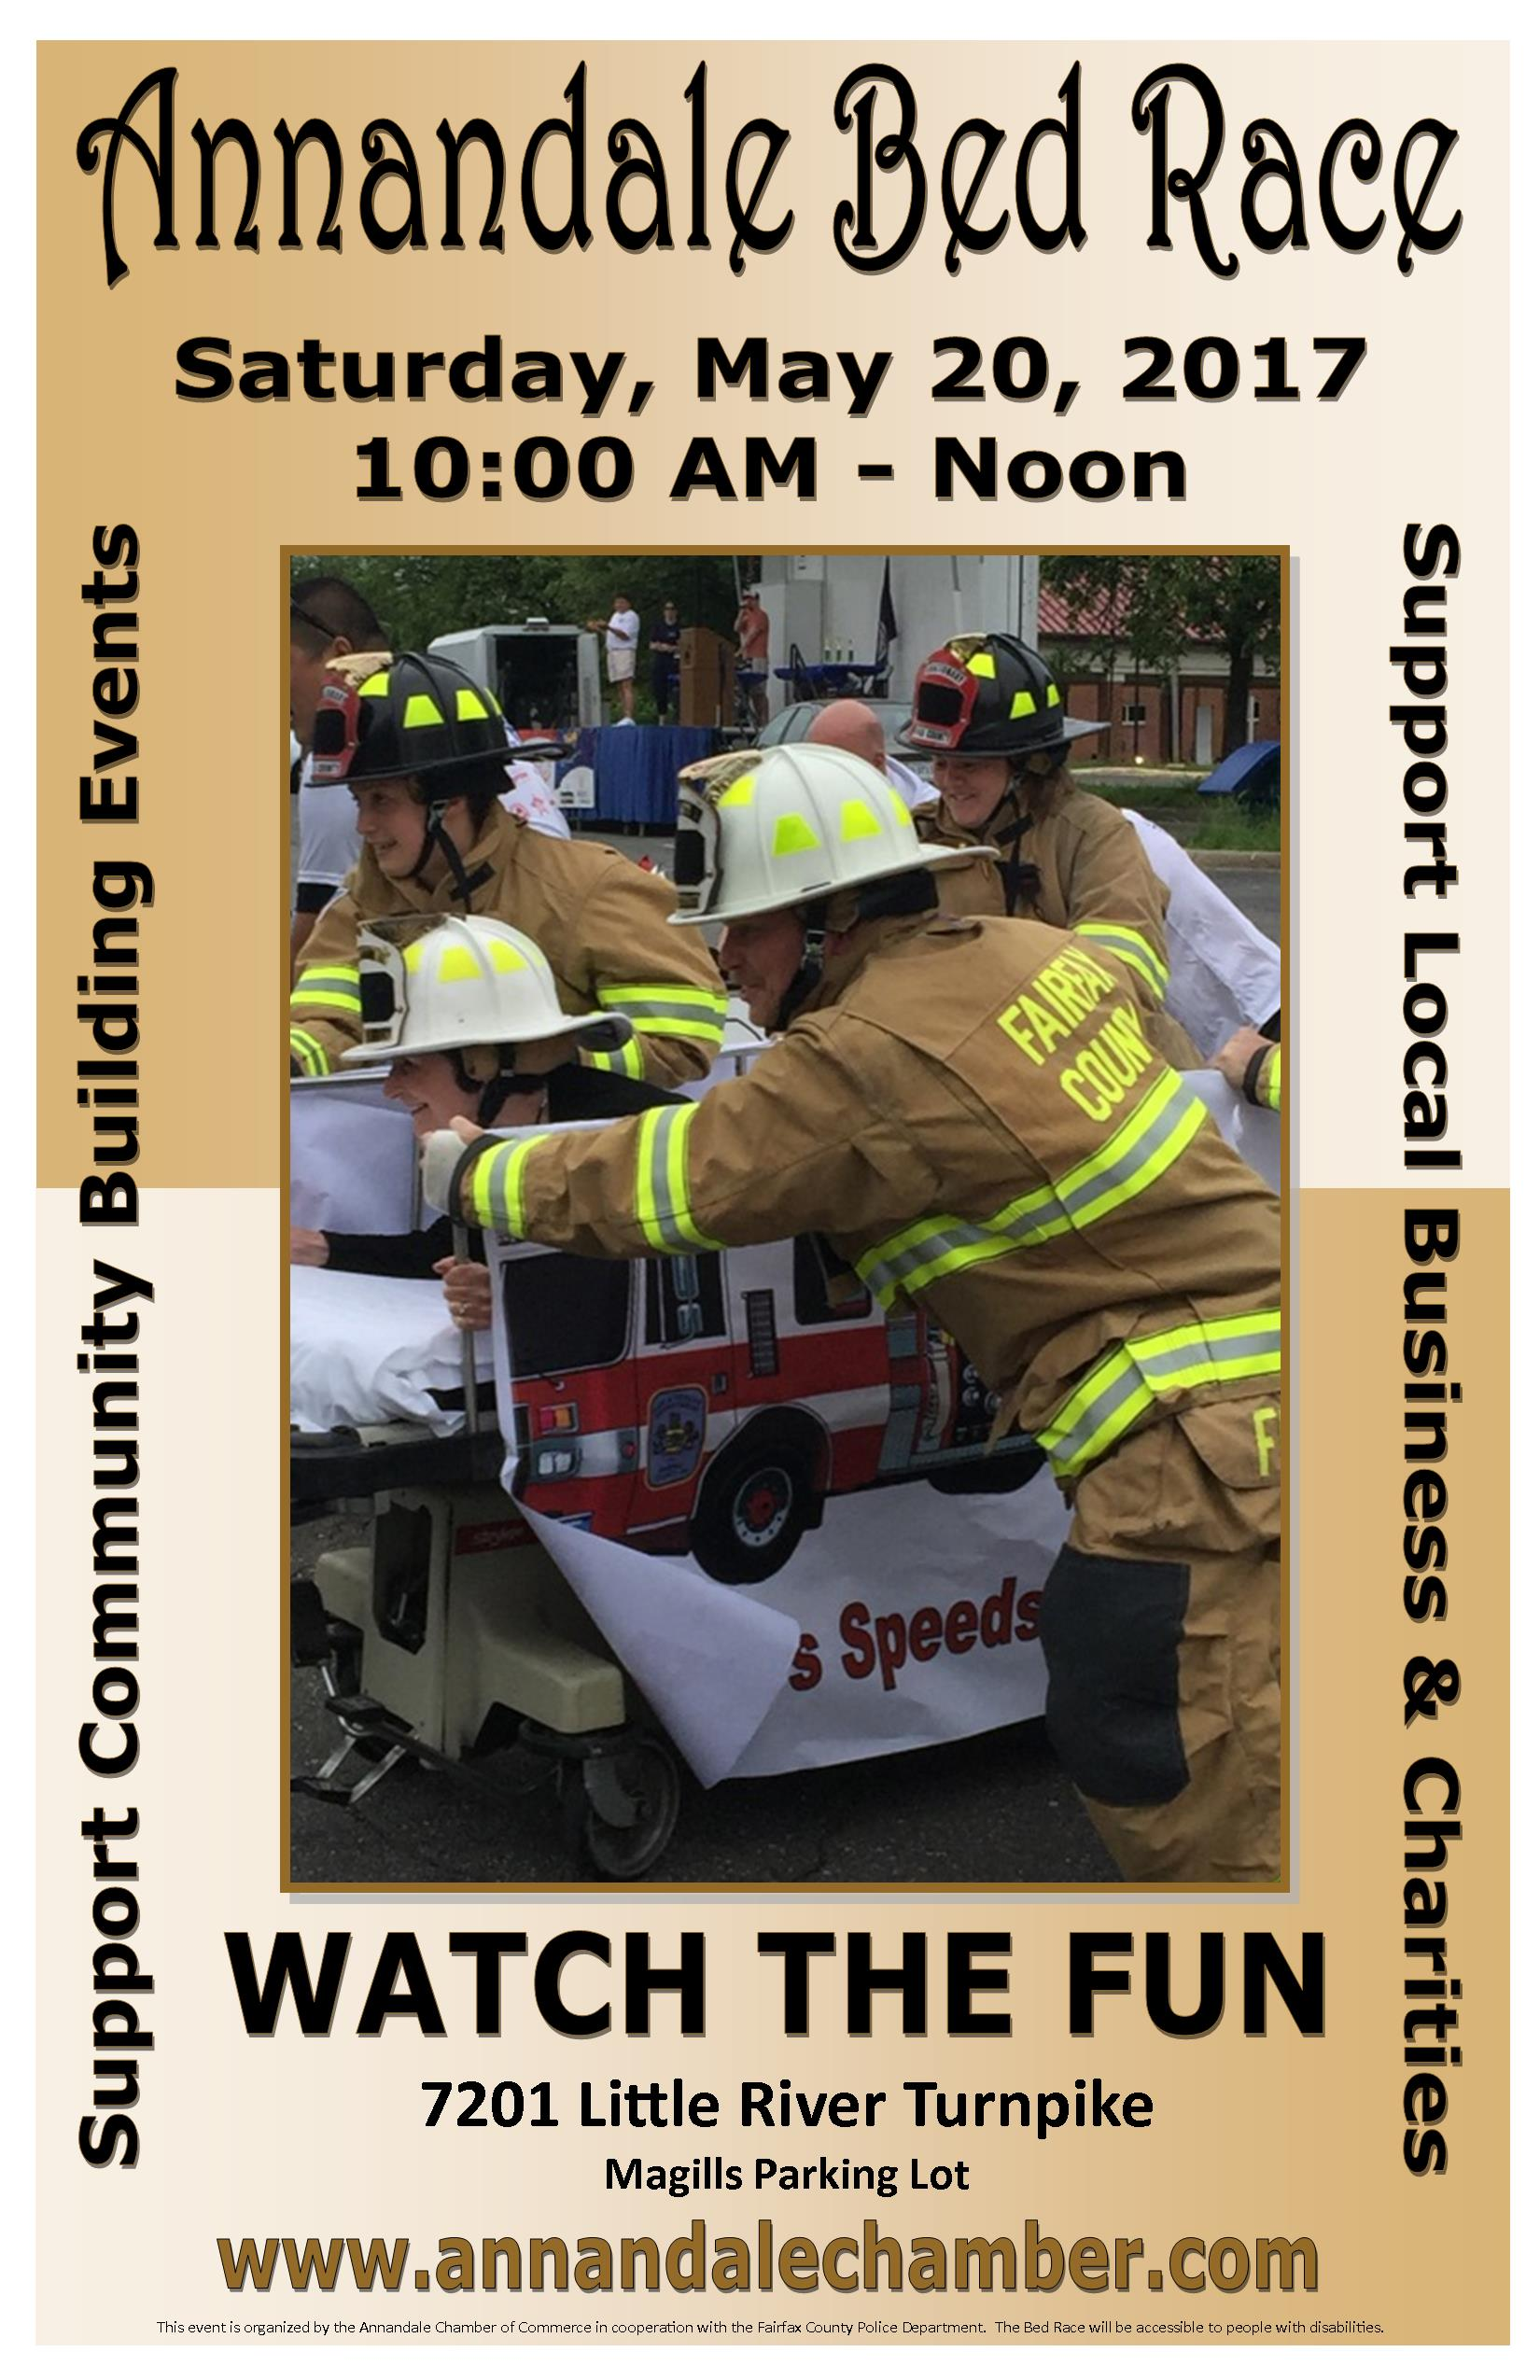 Poster for 2017 Annandale Bed Race charity event with firefighters pushing a decorated hospital bed